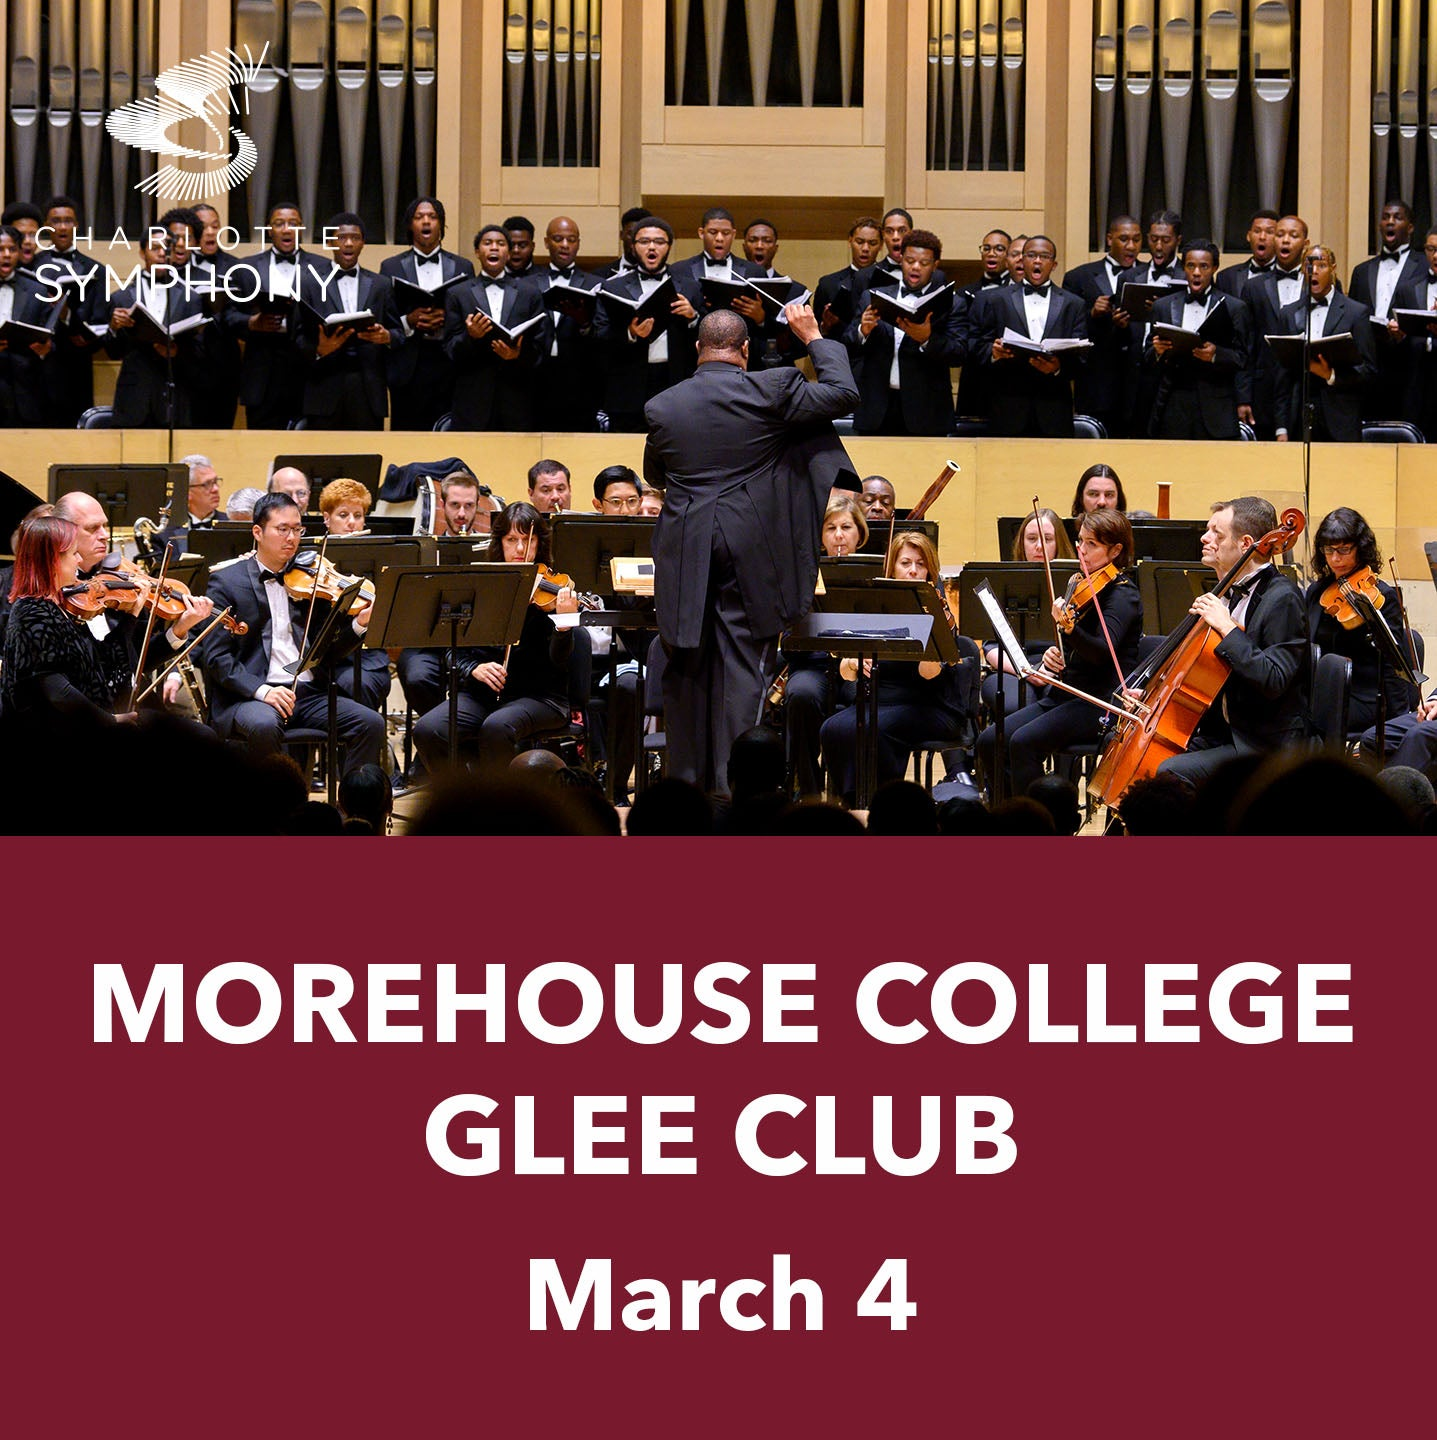 Charlotte Symphony Orchestra presents Morehouse College Glee Club